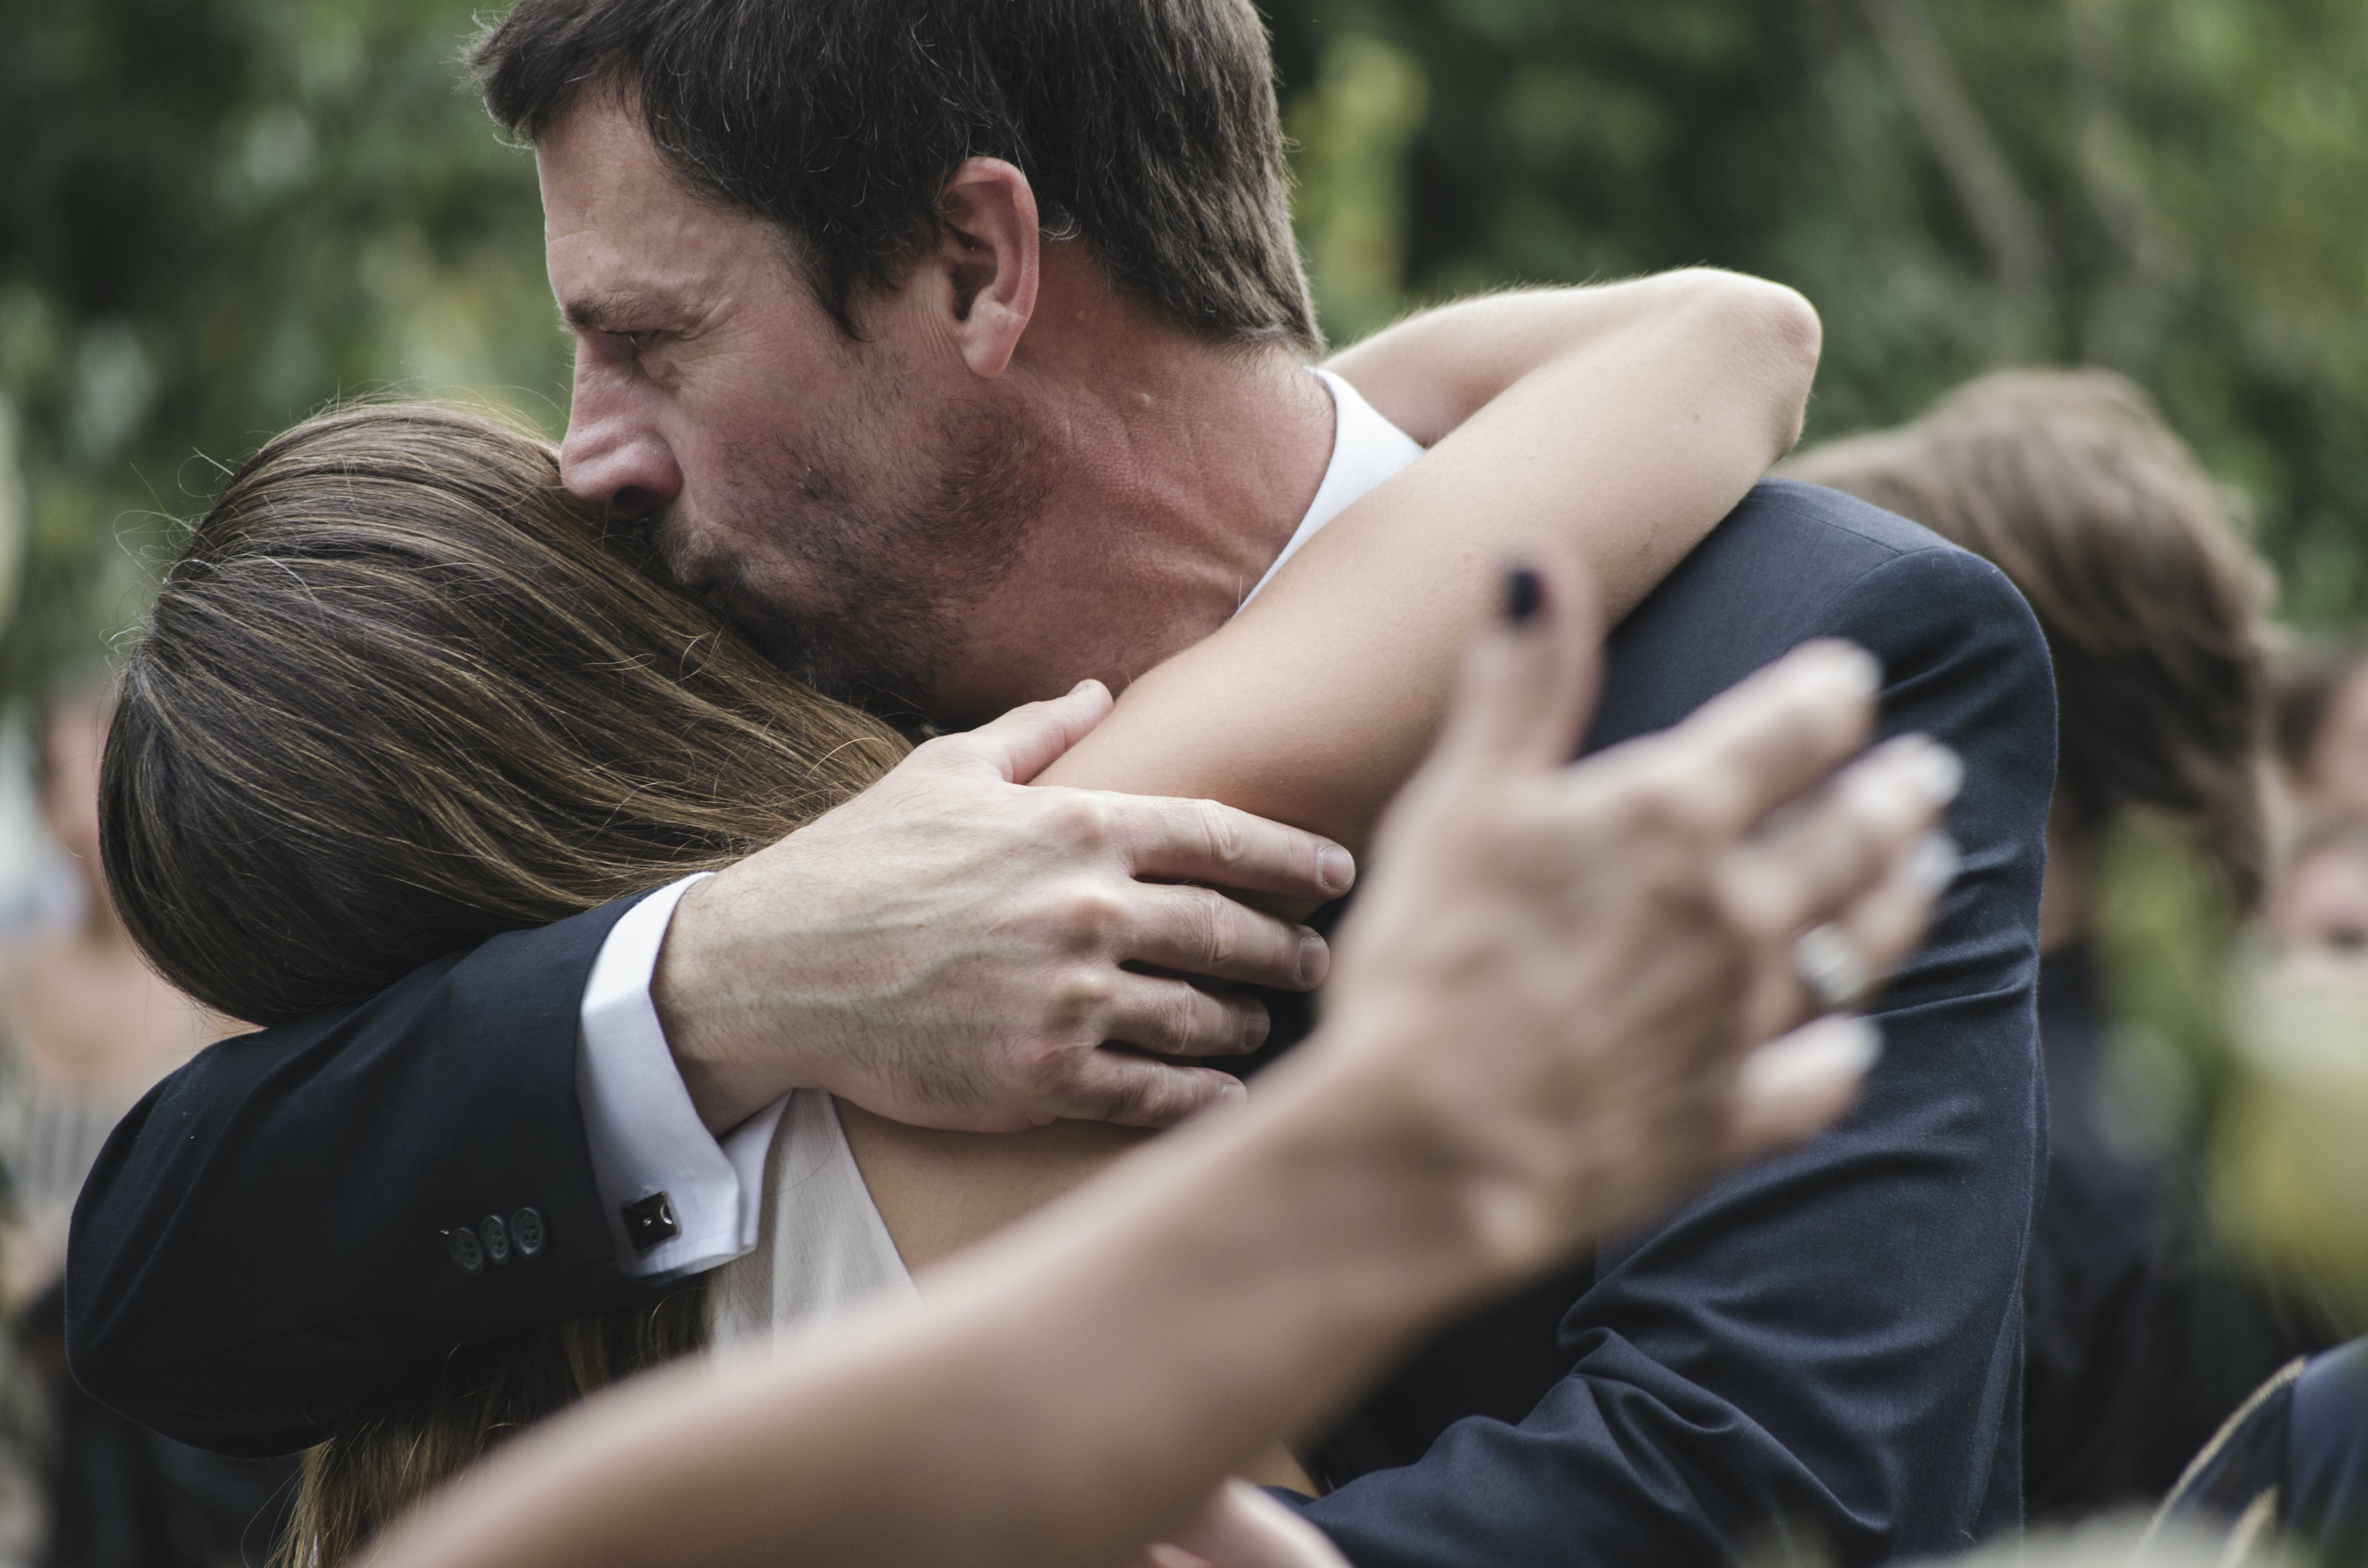 Man and Woman Hugging While Man Kissing Woman's Head